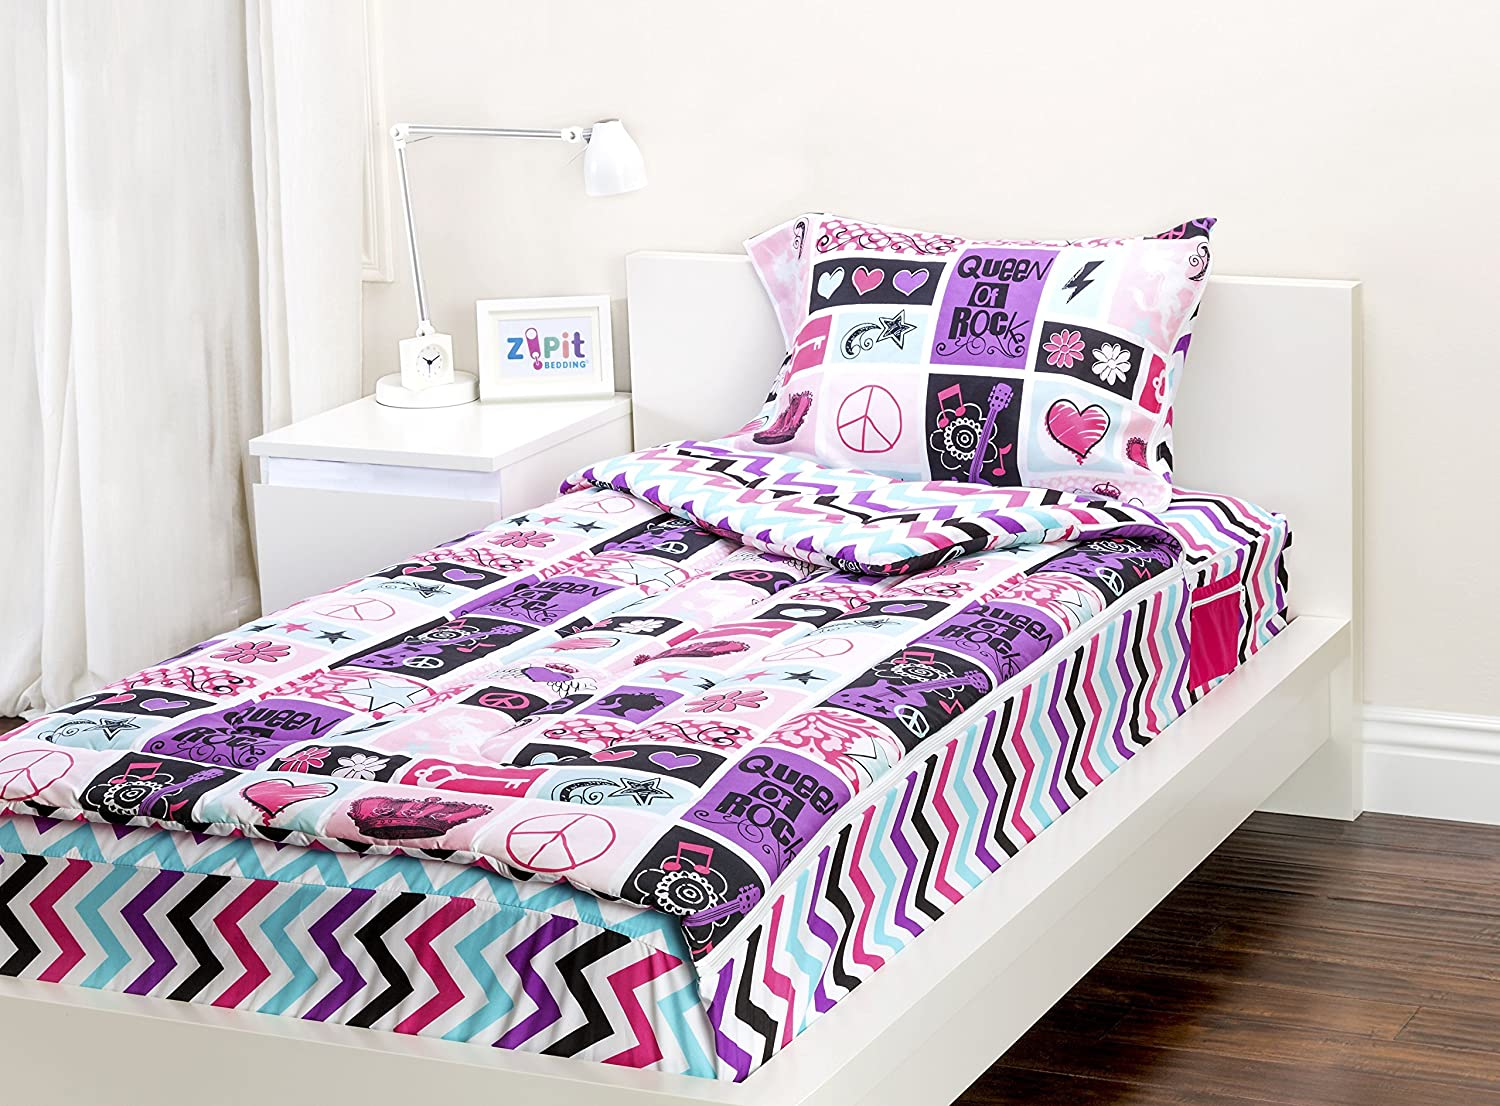 Zipit Bedding Set, Rock Princess - Twin